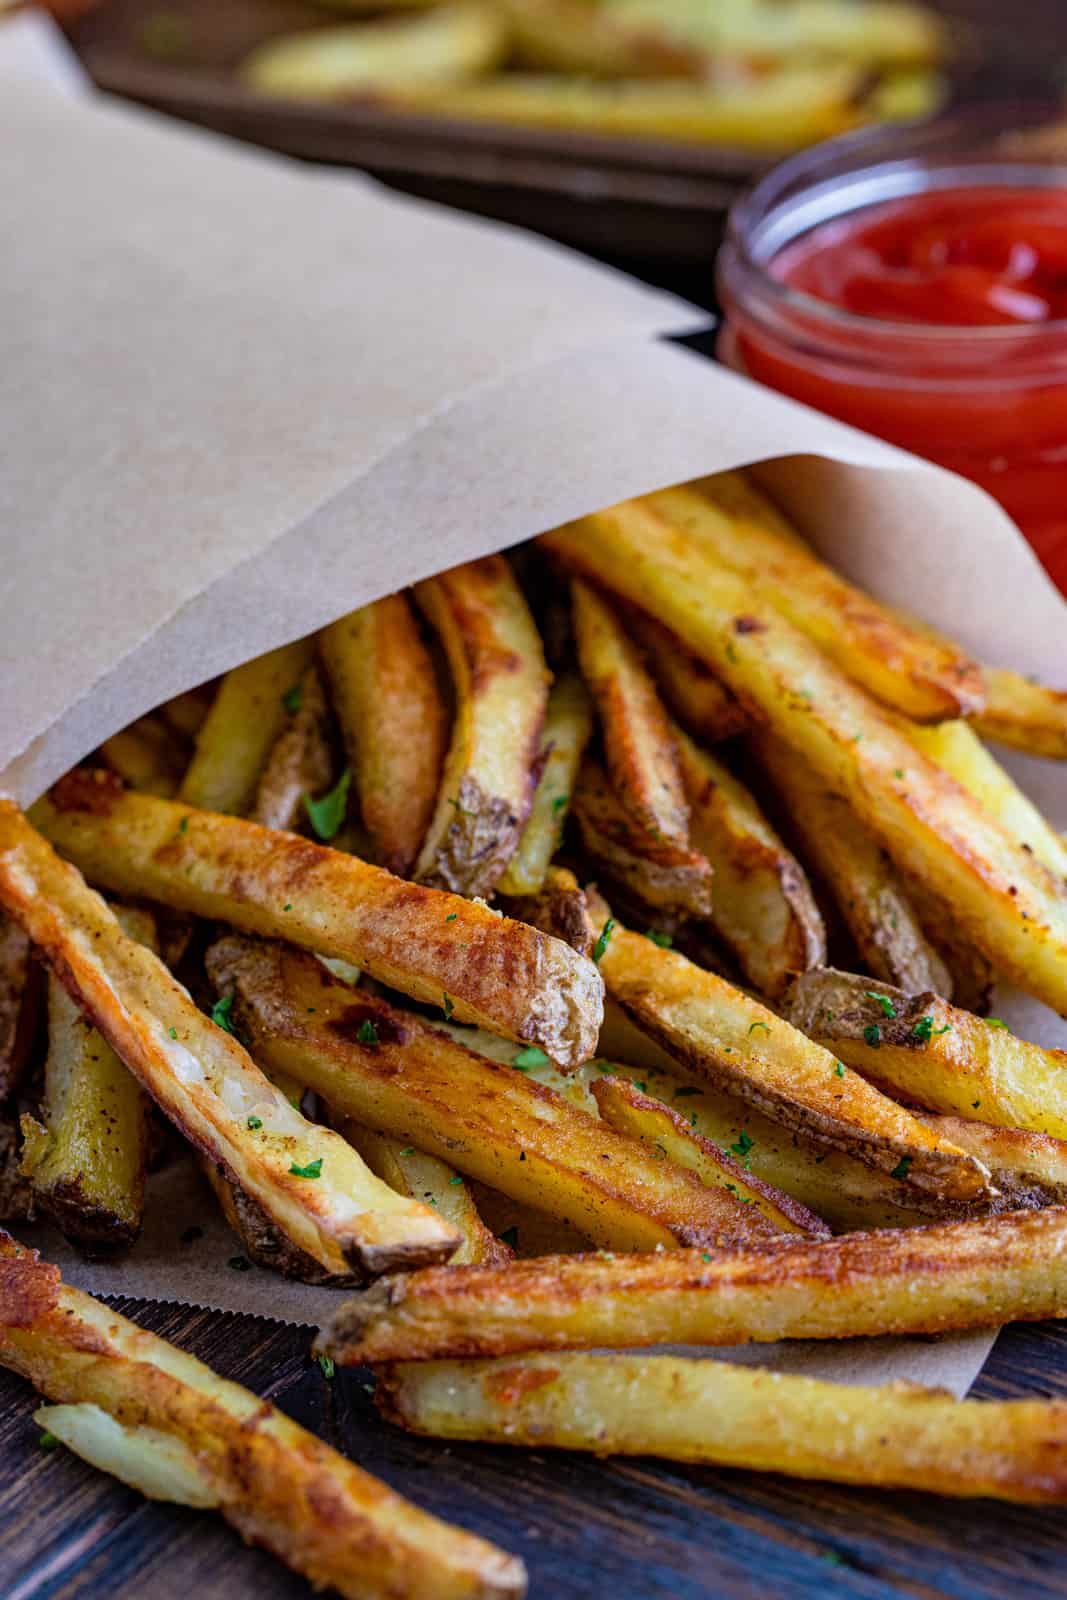 Parchment paper wrapped Baked French Fries close up showing parsley